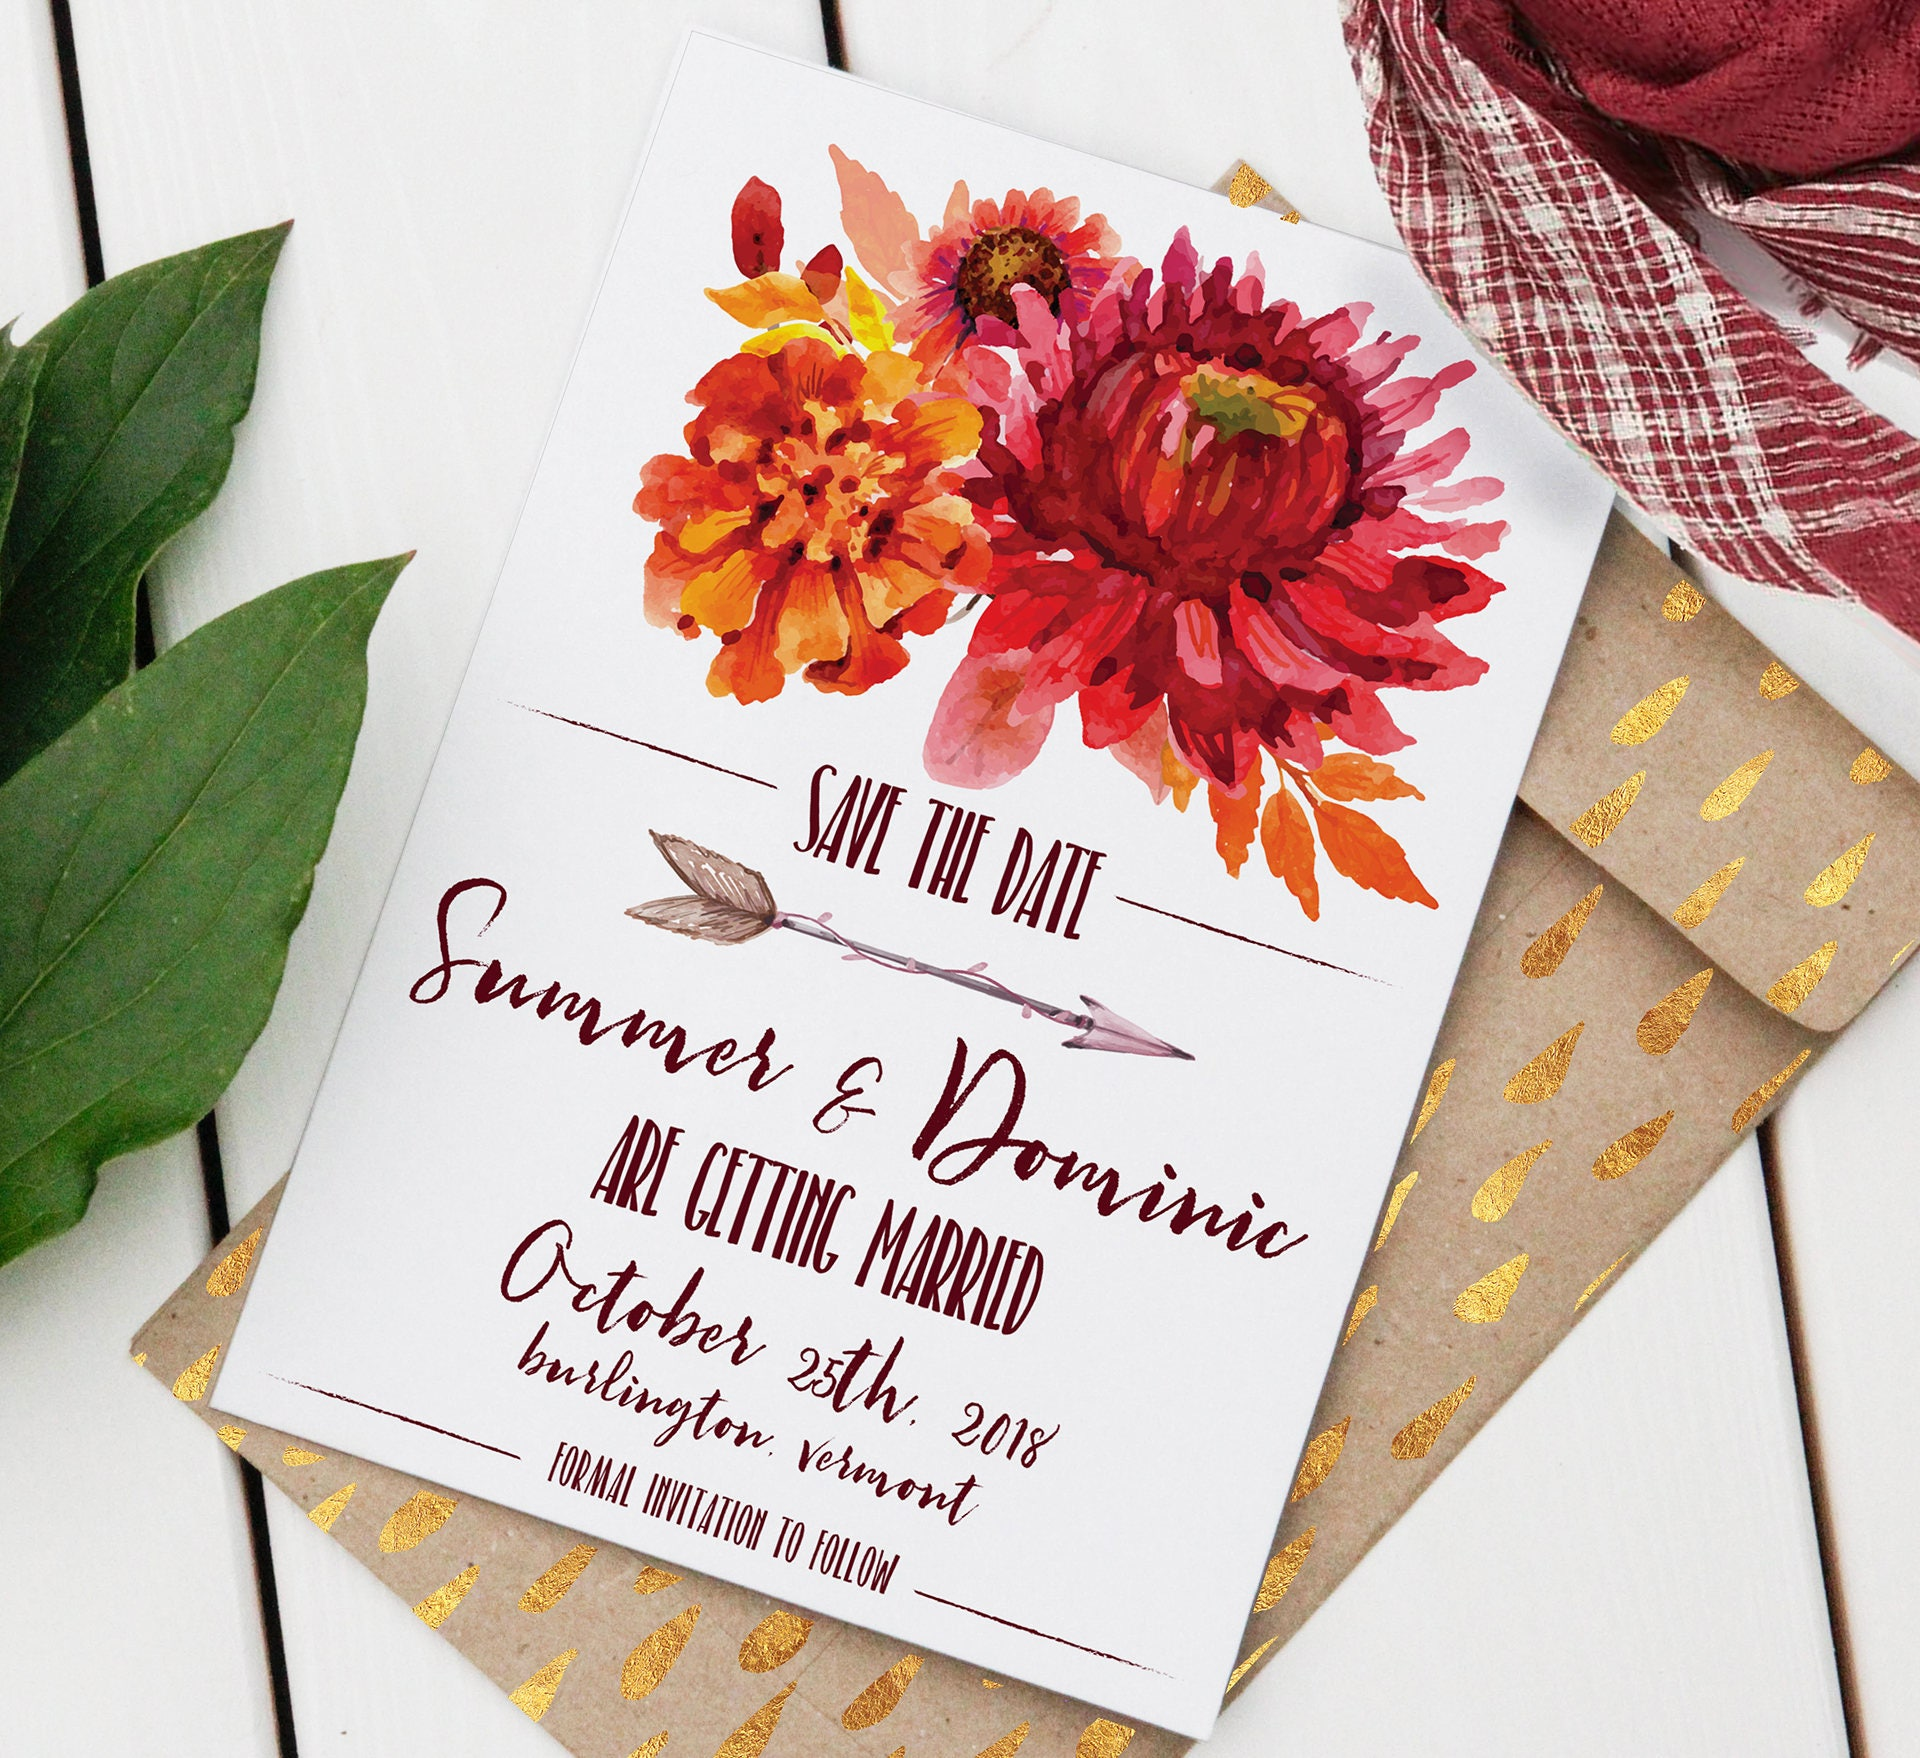 Editable Save-the-Date Bohemian Wedding Instant Download | Etsy